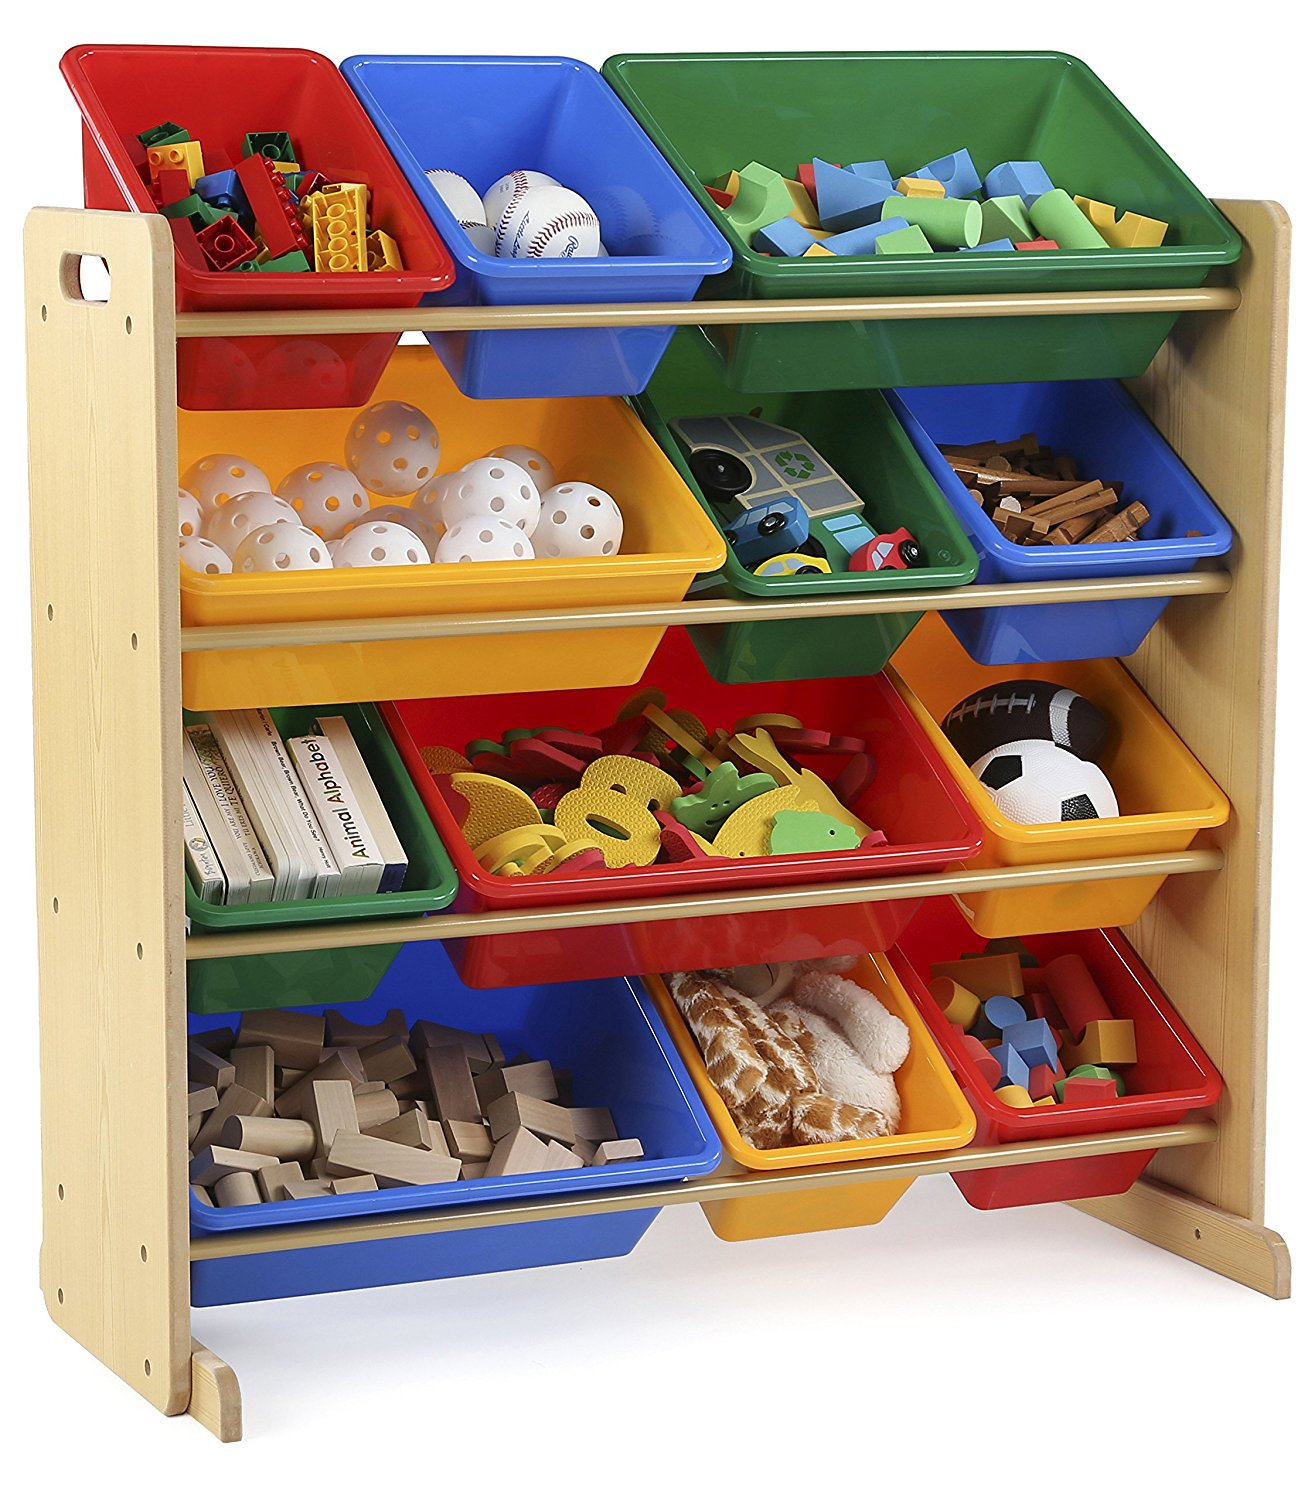 Top 10 Best Selling Home Kids Toy Storage Organizer Kids Toys News